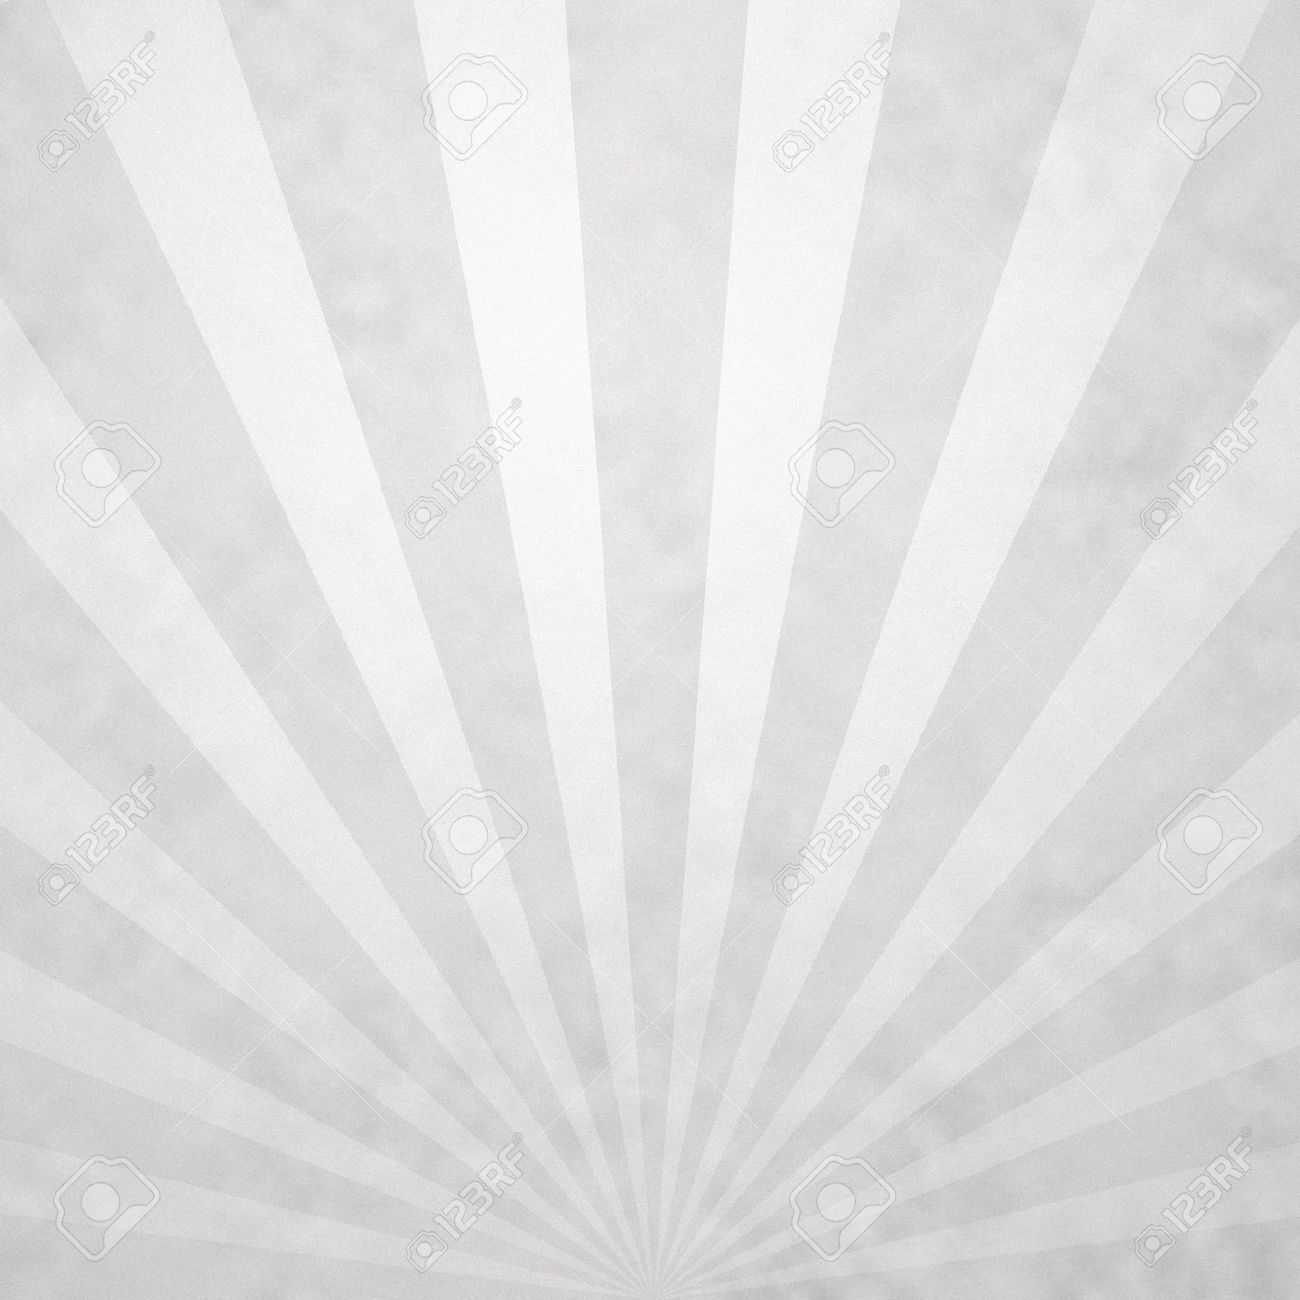 White grey background abstract design texture stock photo for Gray and white wallpaper designs